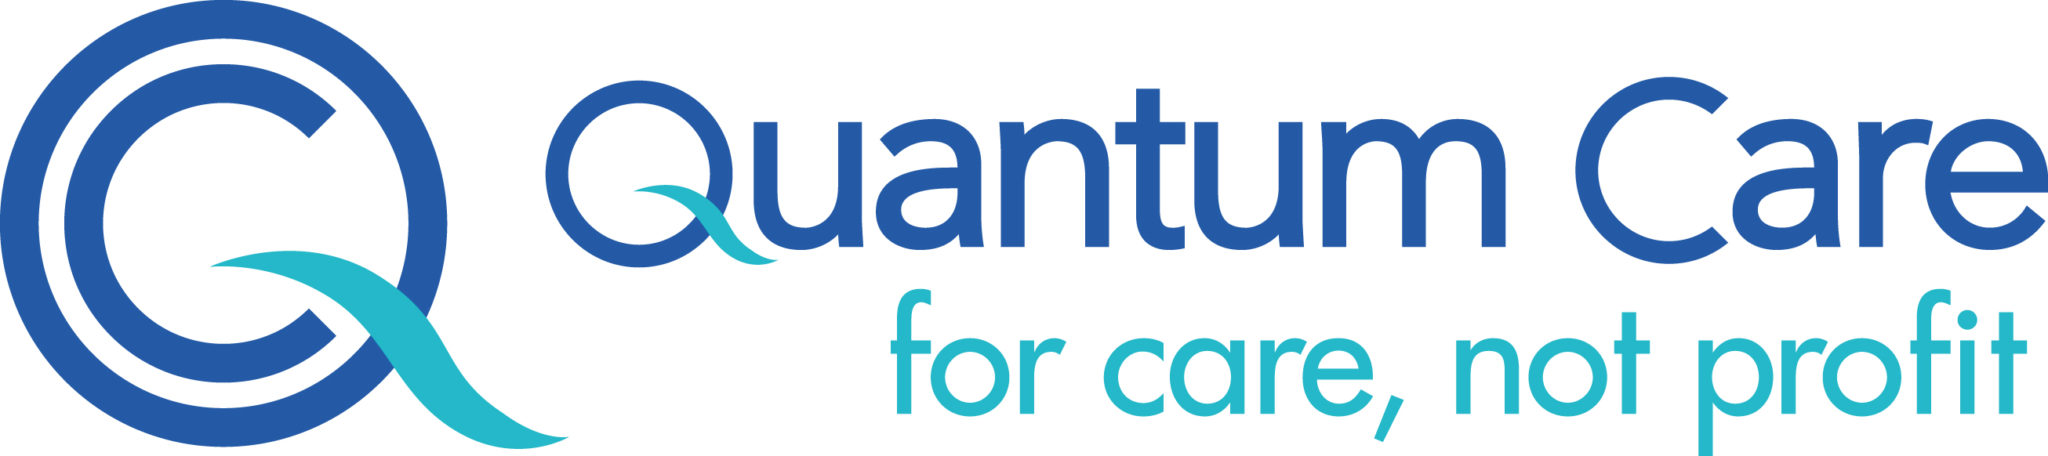 Quantum Care Limited